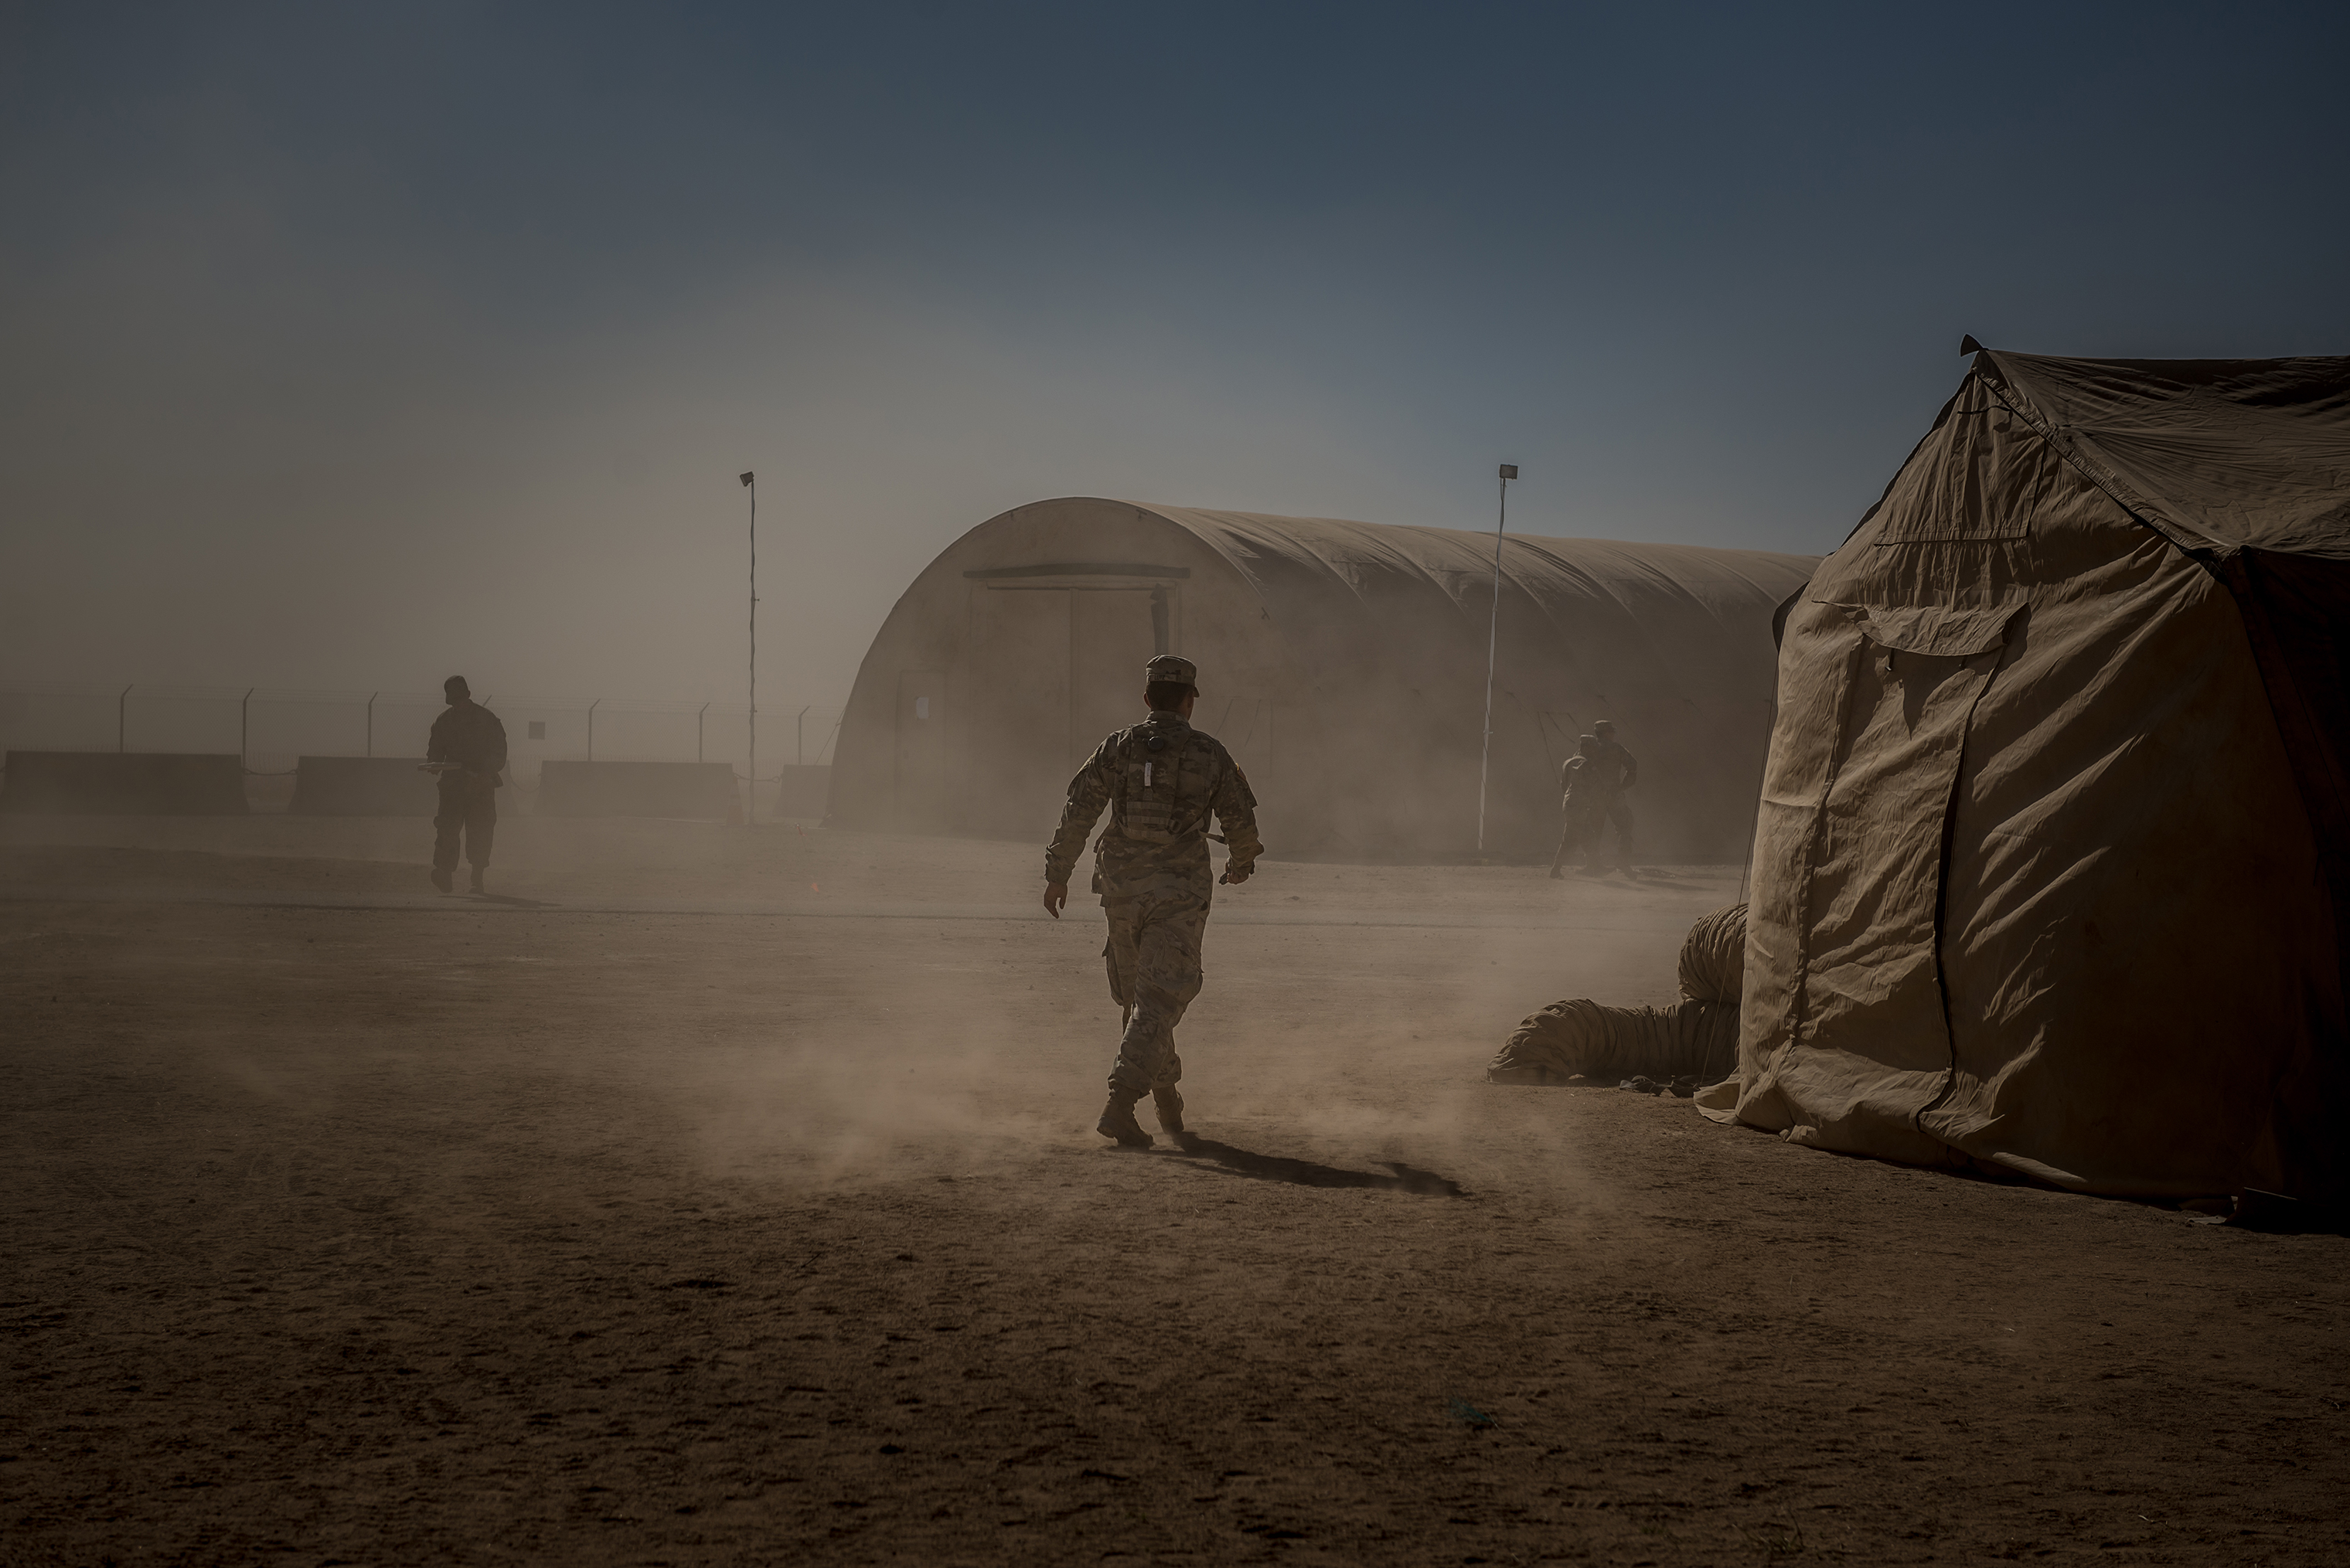 A soldier walks through a sandstorm at Sunglow City.